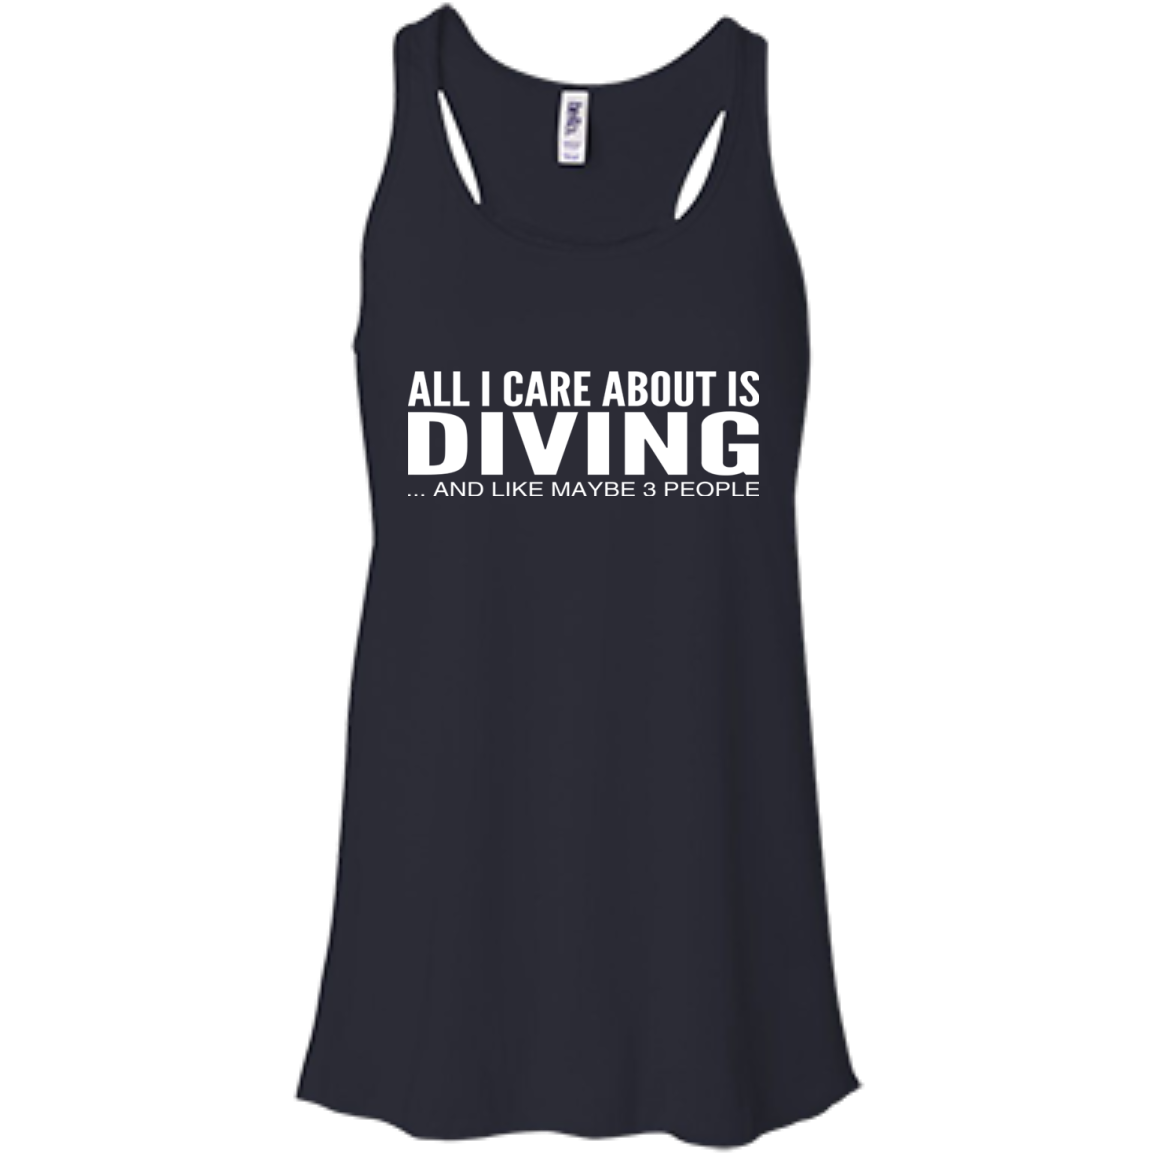 All I Care About Is Diving And Like Maybe 3 People Flowy Racerback Tanks